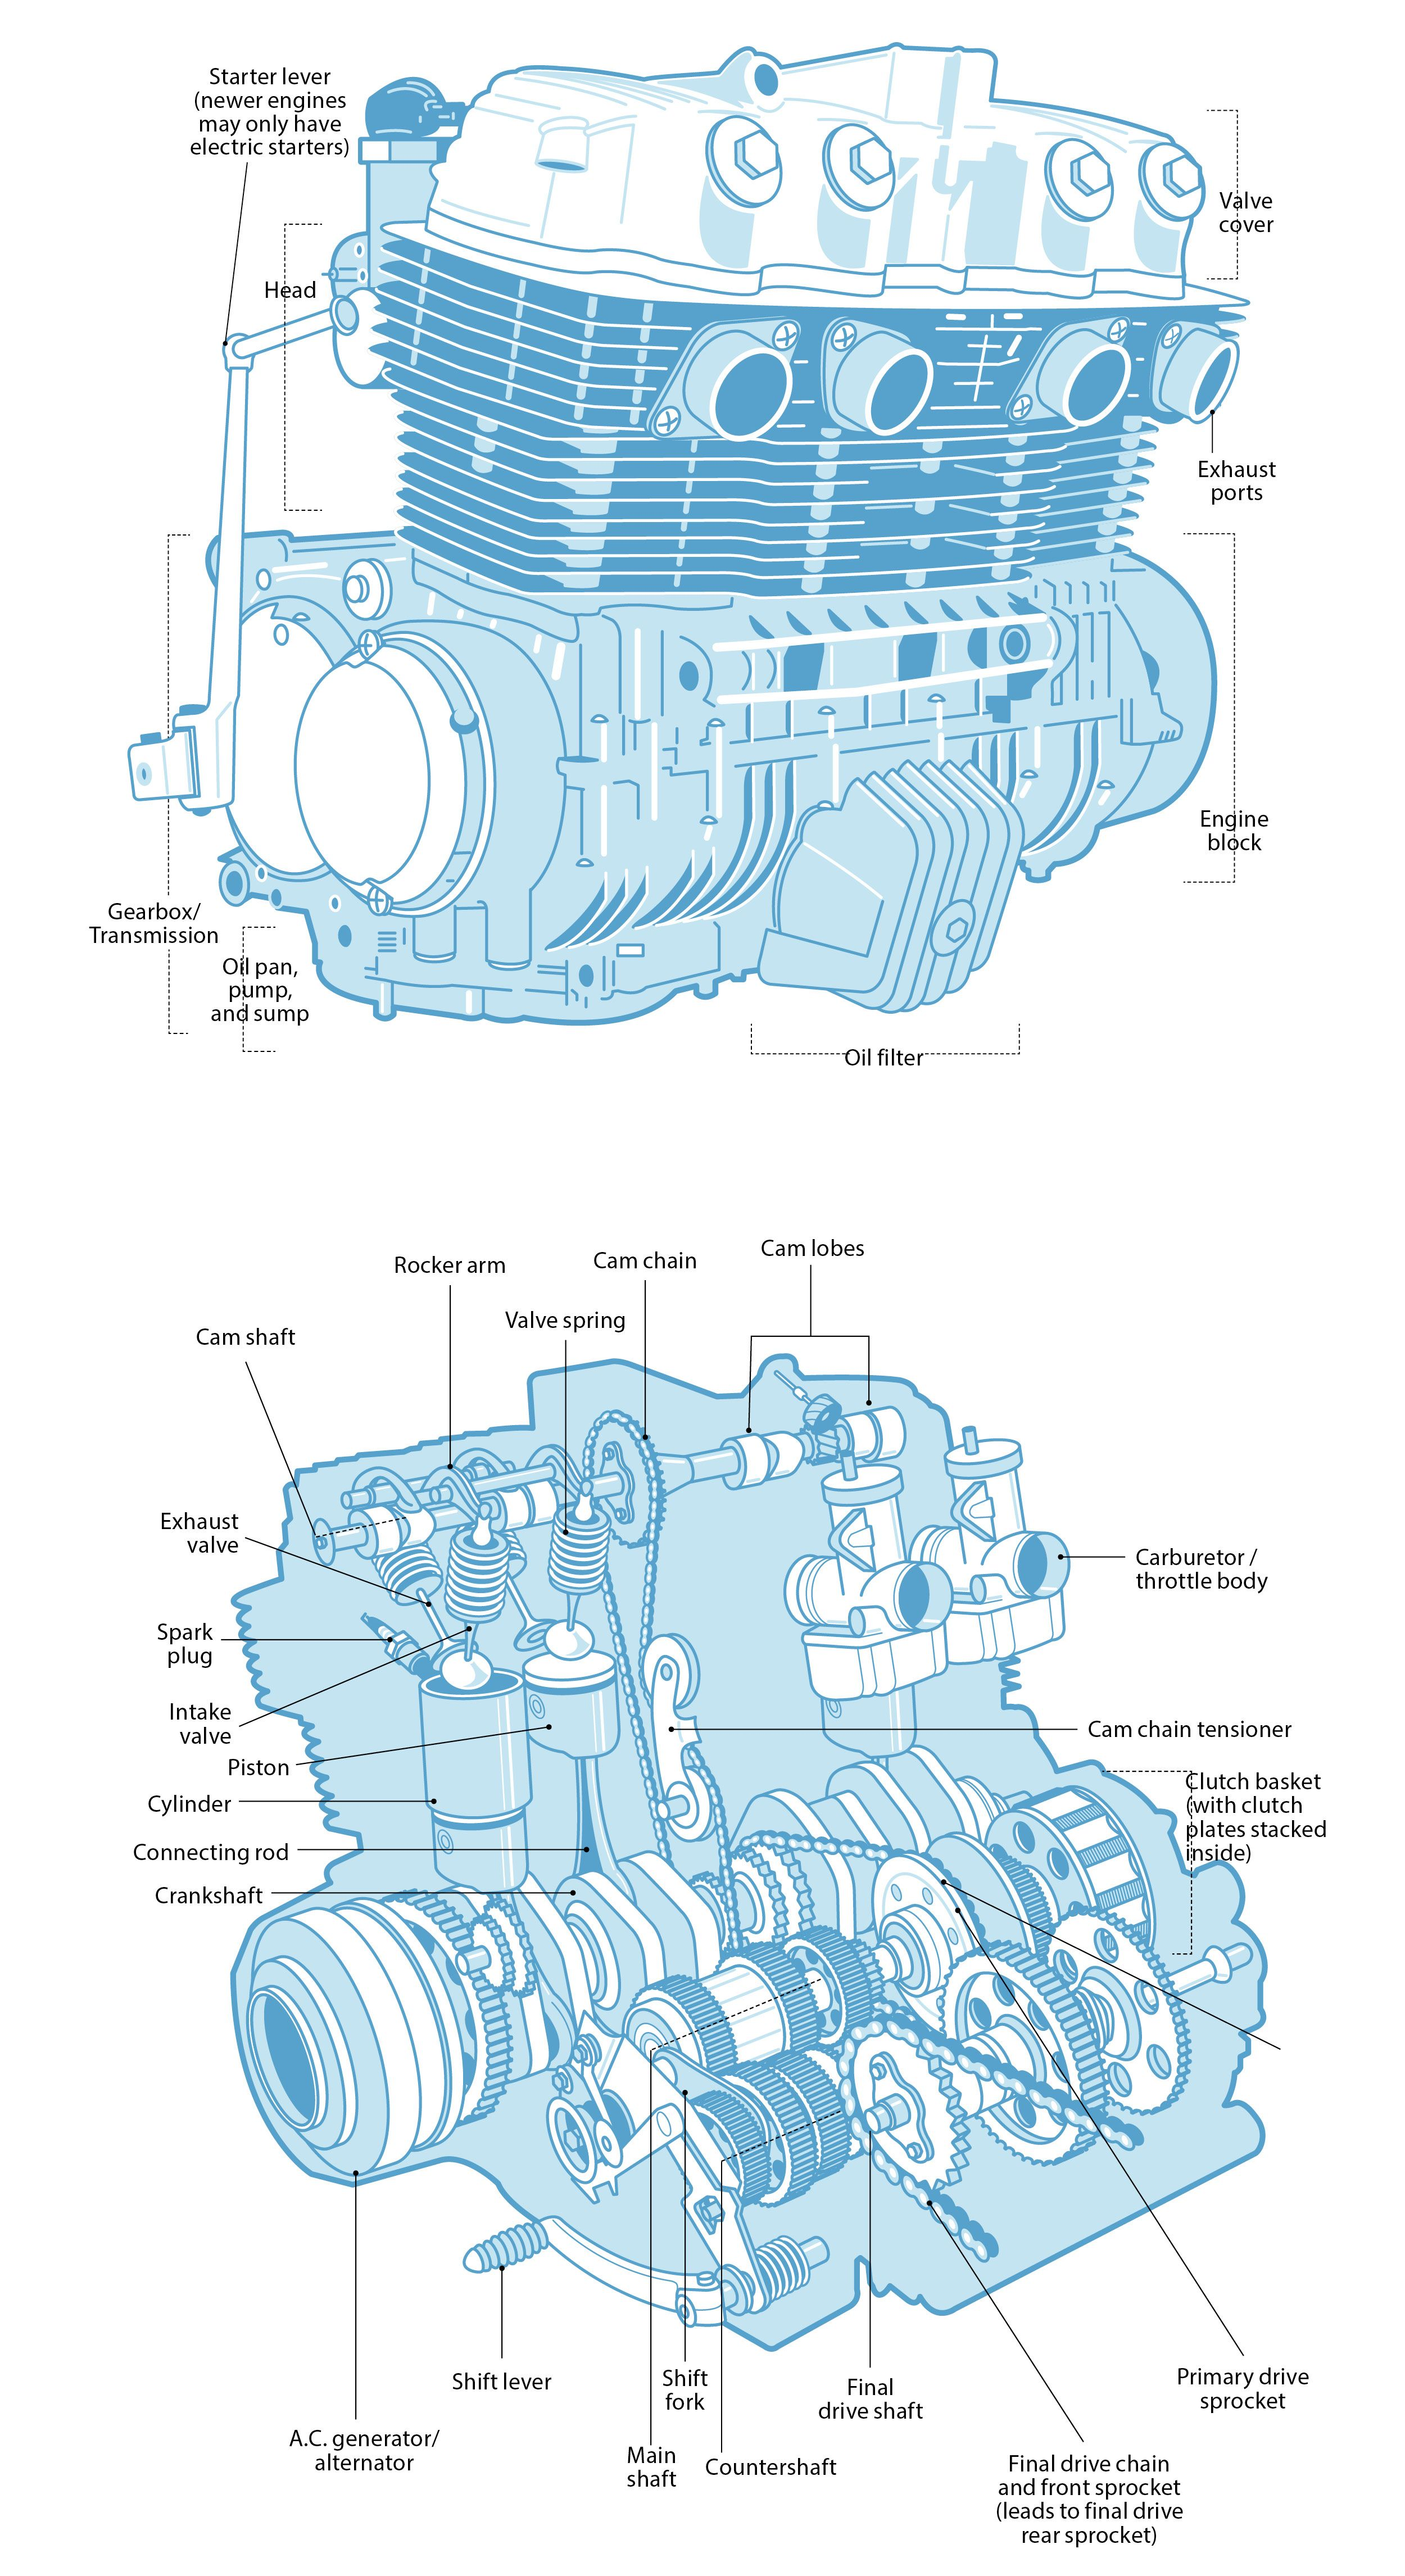 medium resolution of understand engine anatomy tip 262 from the pages of the total motorcycling manual